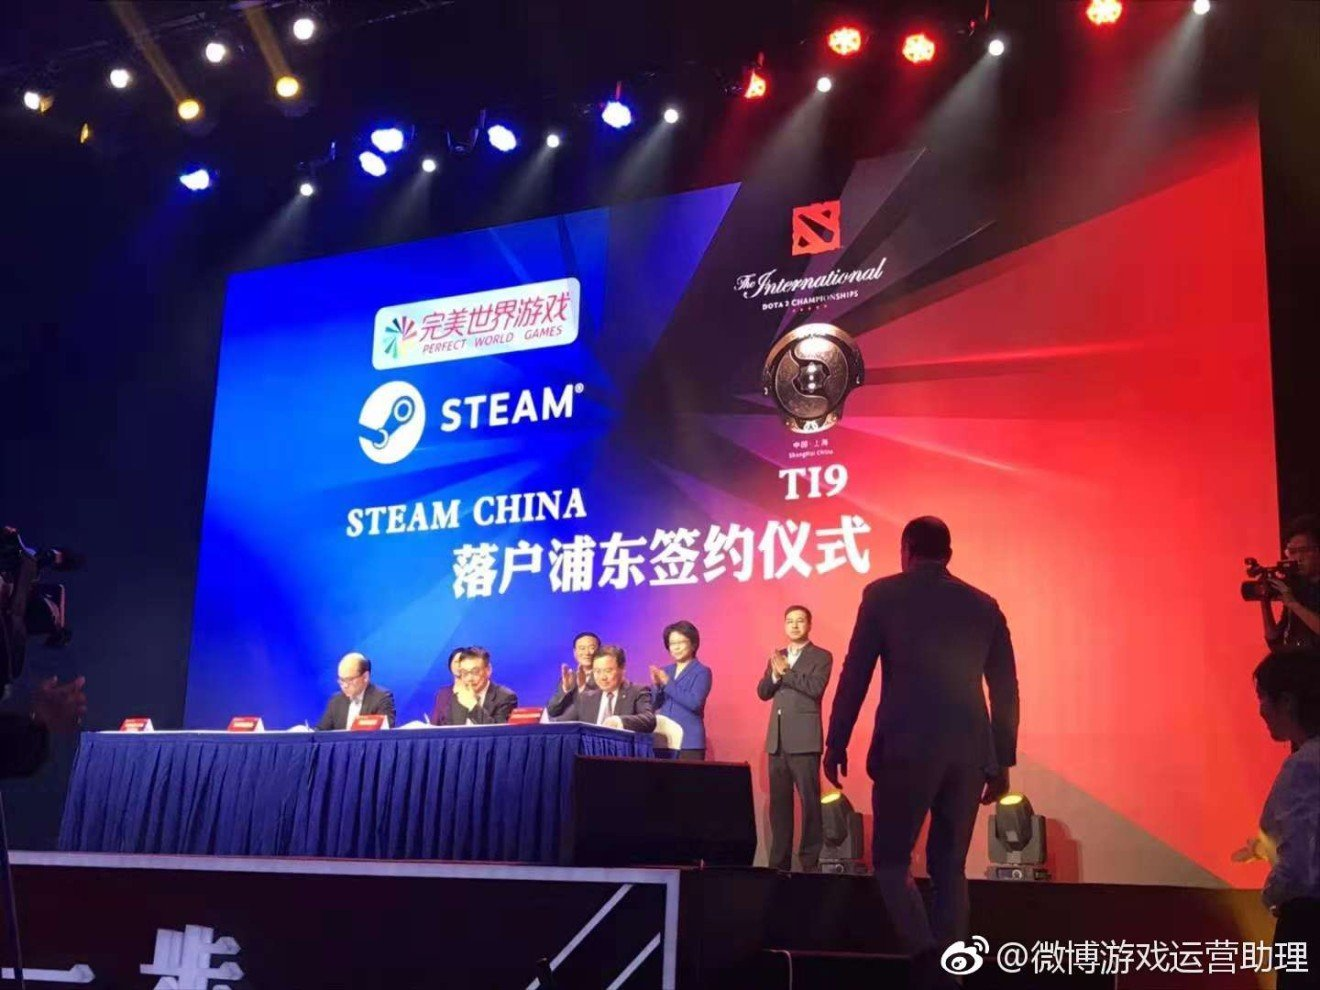 Steam is finally coming to China but Chinese gamers don't want it